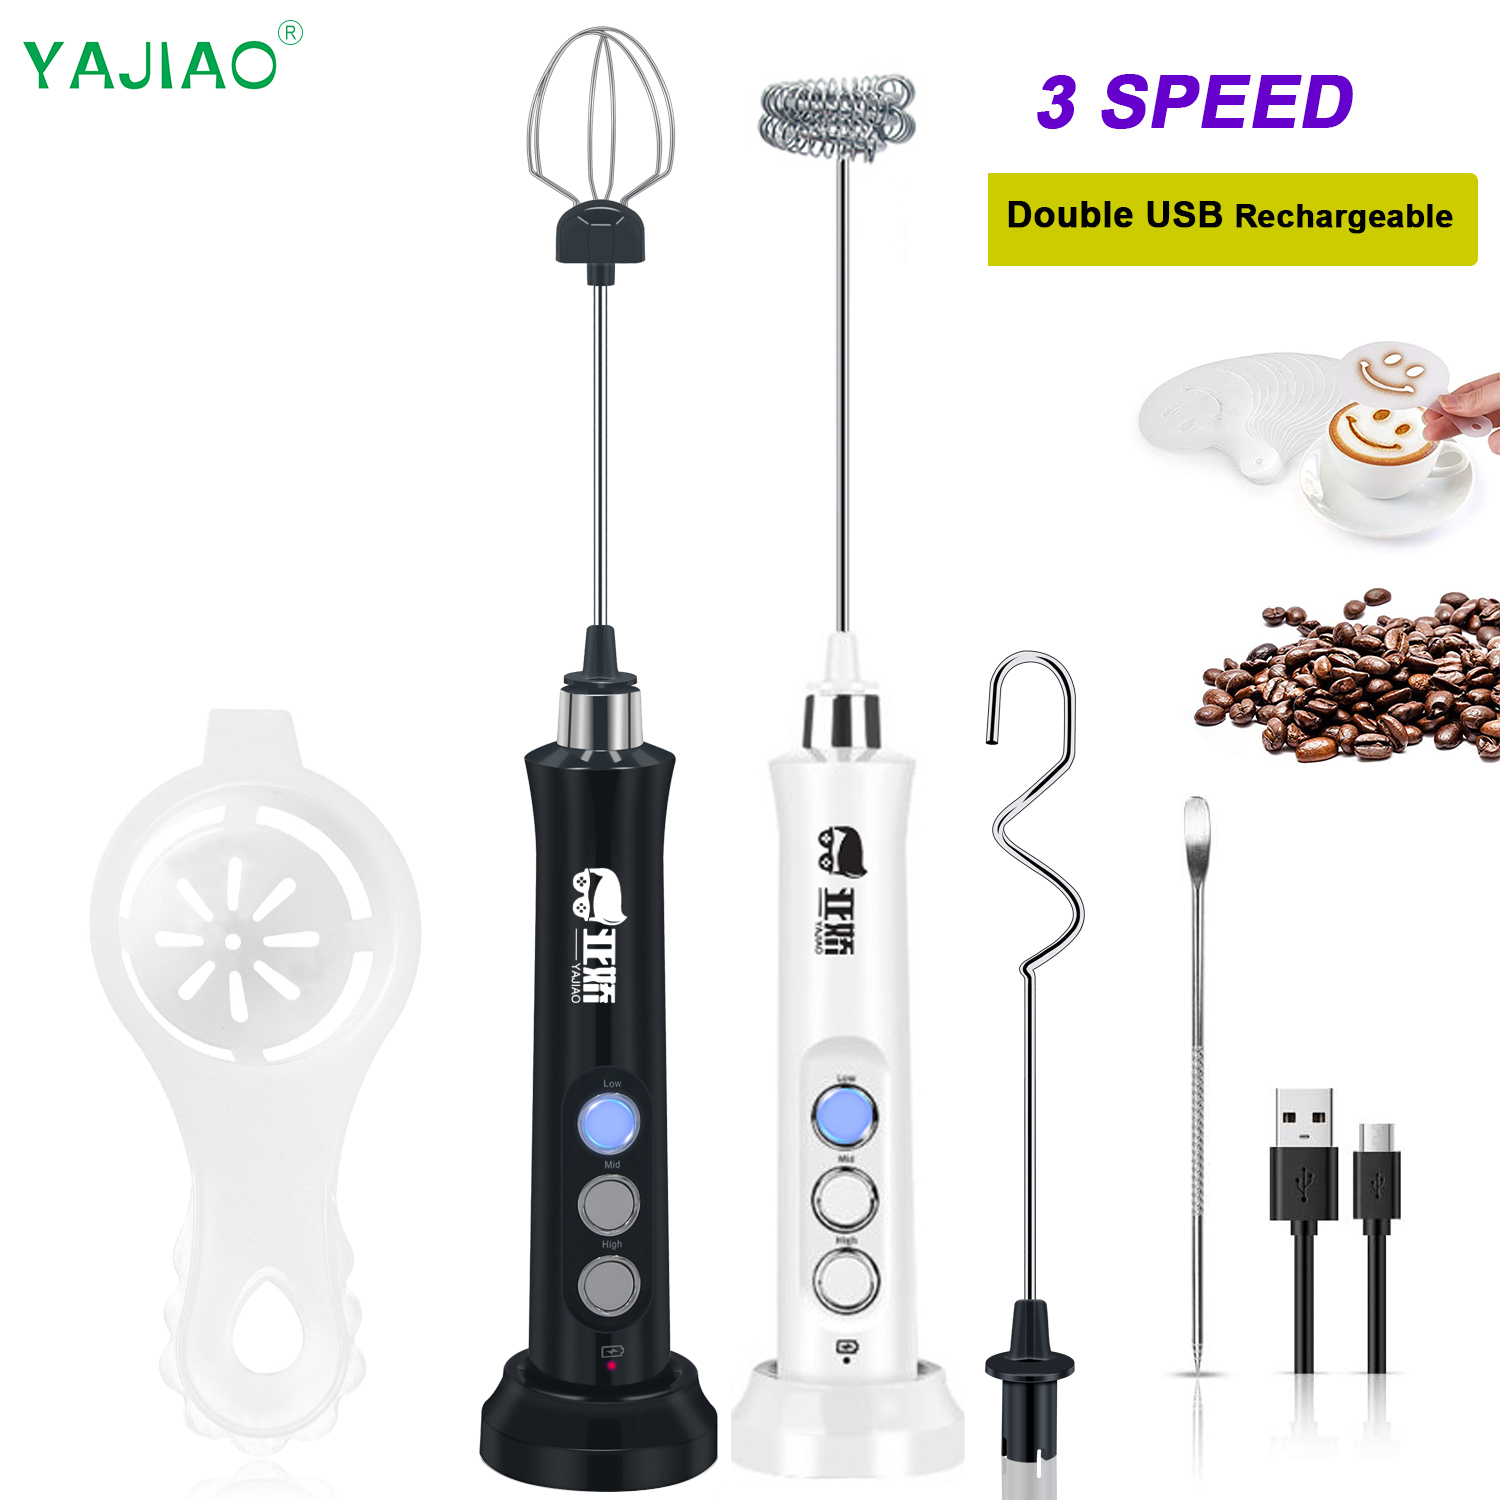 YAJIAO 2021 Electric Mixer Blender Milk Frother Handheld With USB Rechargeable Dock Bubble Maker Whisk For Coffee Cappuccino